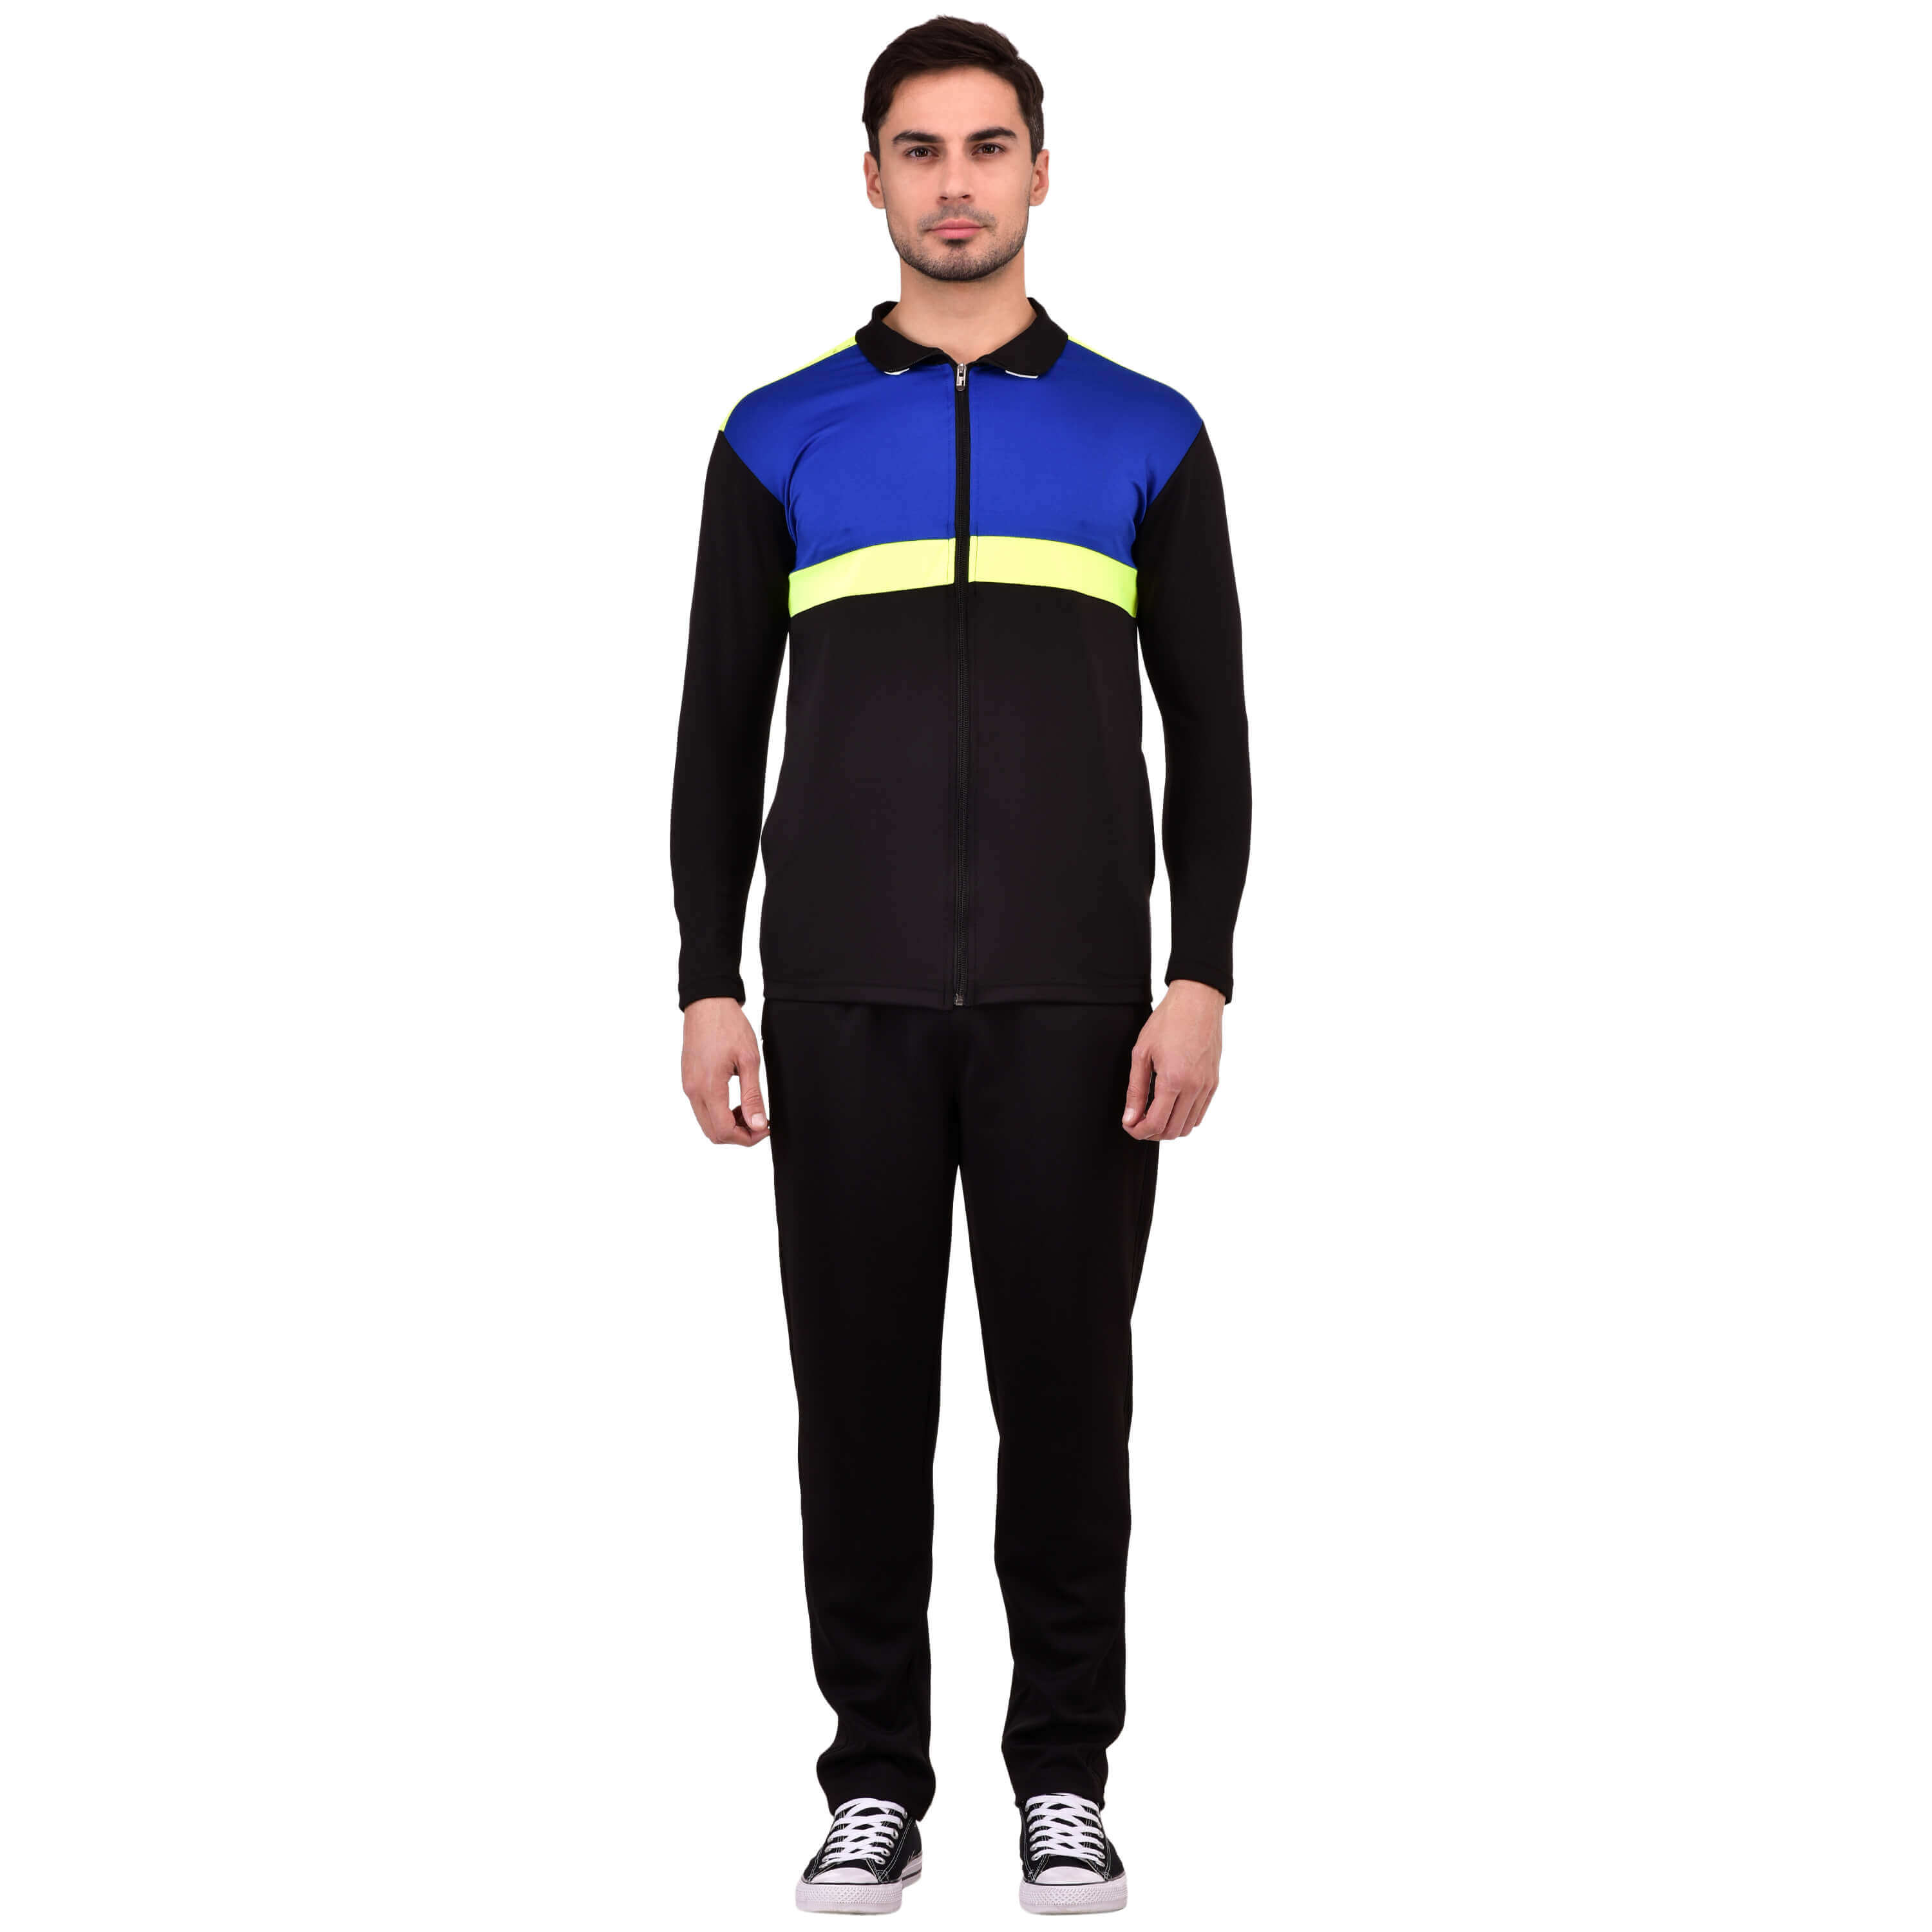 Mens Black Tracksuit Manufacturers in Saharanpur